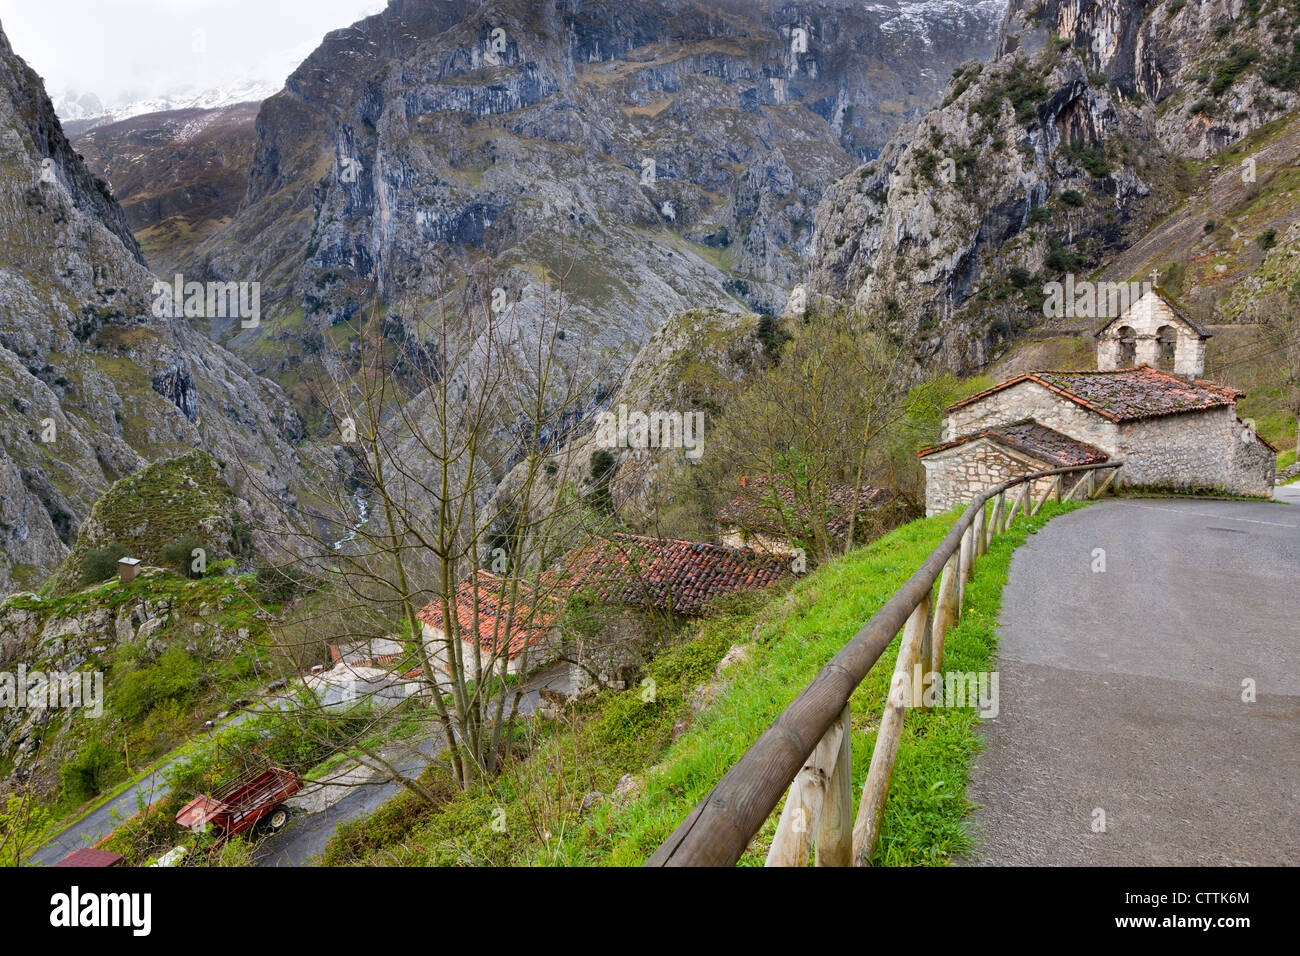 Small church in Camarmena Village on a shoulder of the Garganta del Cares gorge, - Stock Image